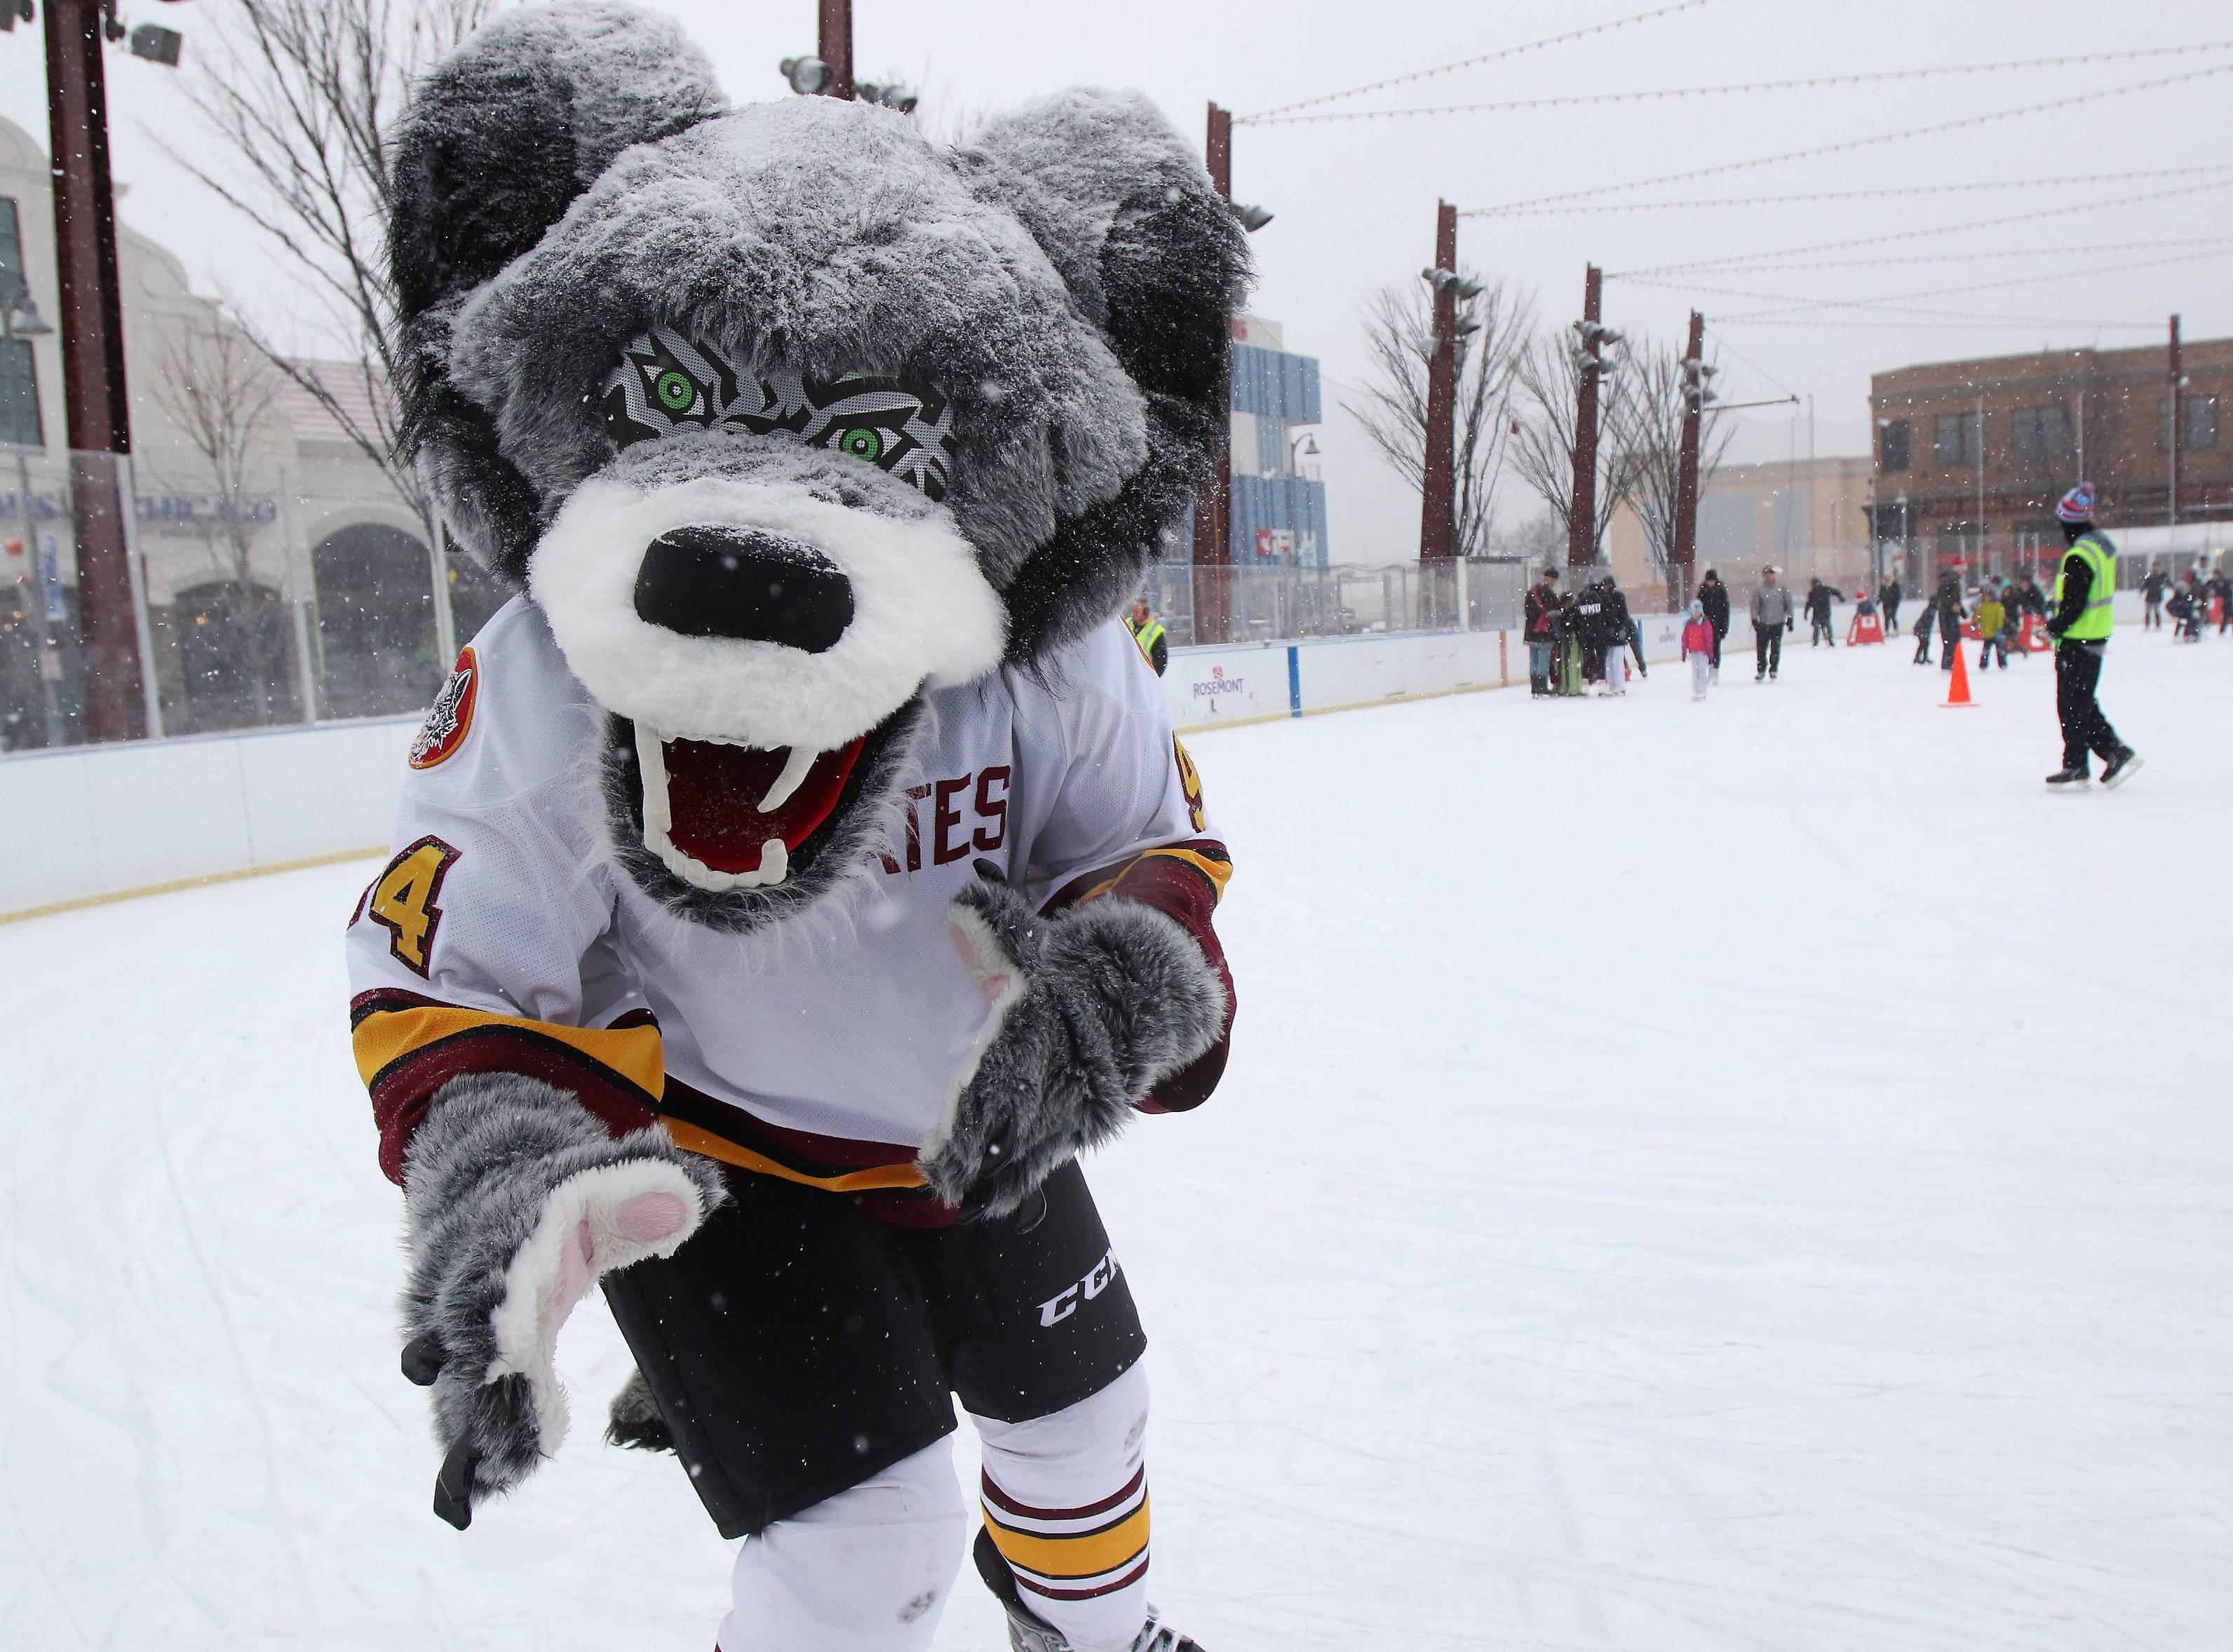 Chicago Wolves' mascot Skate greets children as he skates around the rink during a previous Characters on Ice event at the Chicago Wolves Ice Rink at Parkway Bank Park in Rosemont.